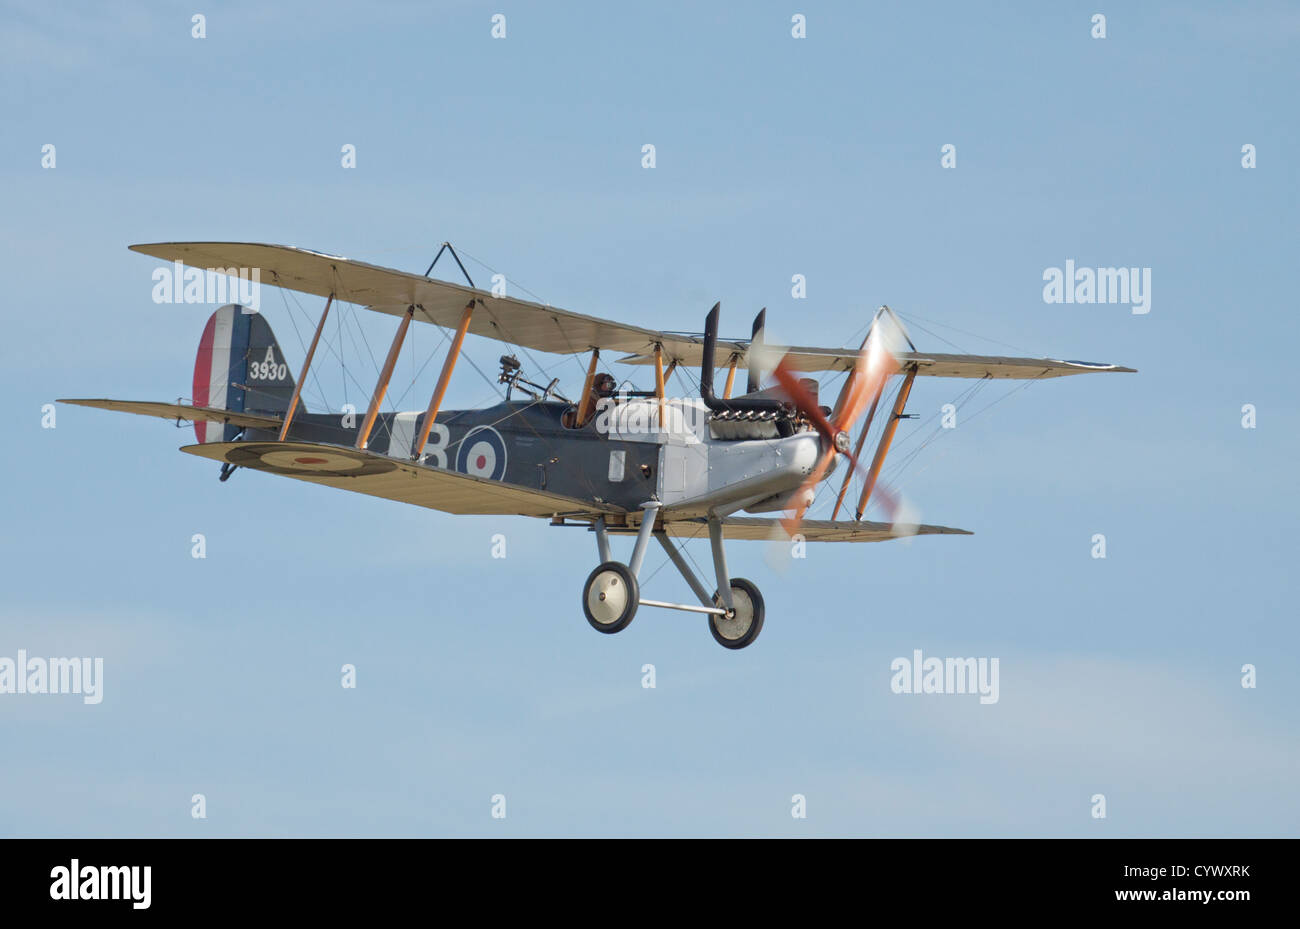 World War 1 Royal Aircraft Factory R.E.8 on a fly past. - Stock Image